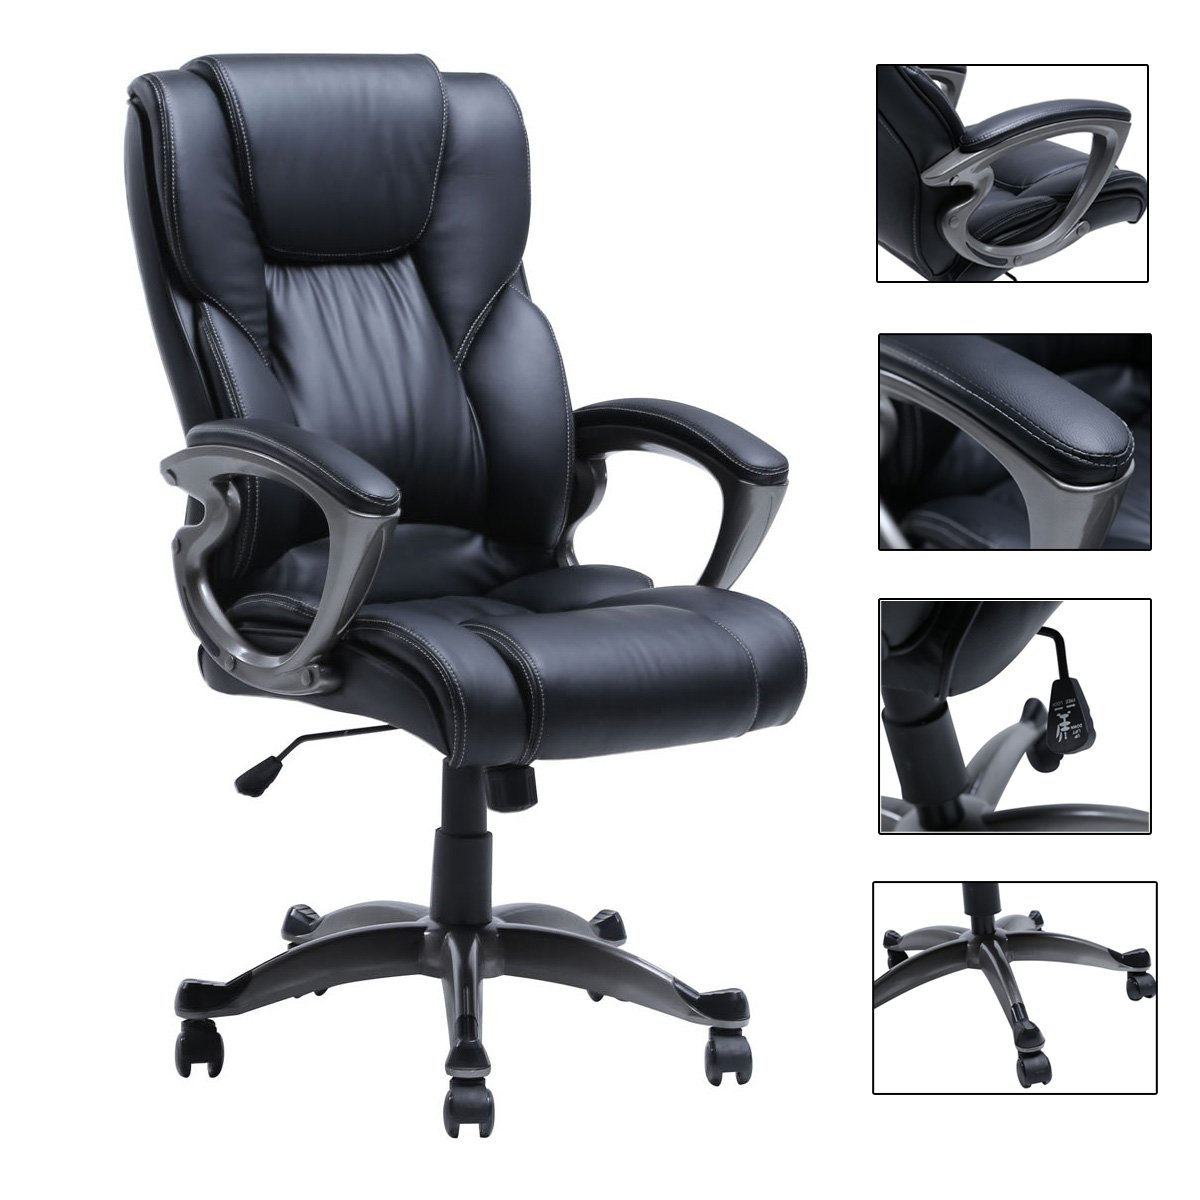 How To Choose The Right Office Chair Desk Chair Computer